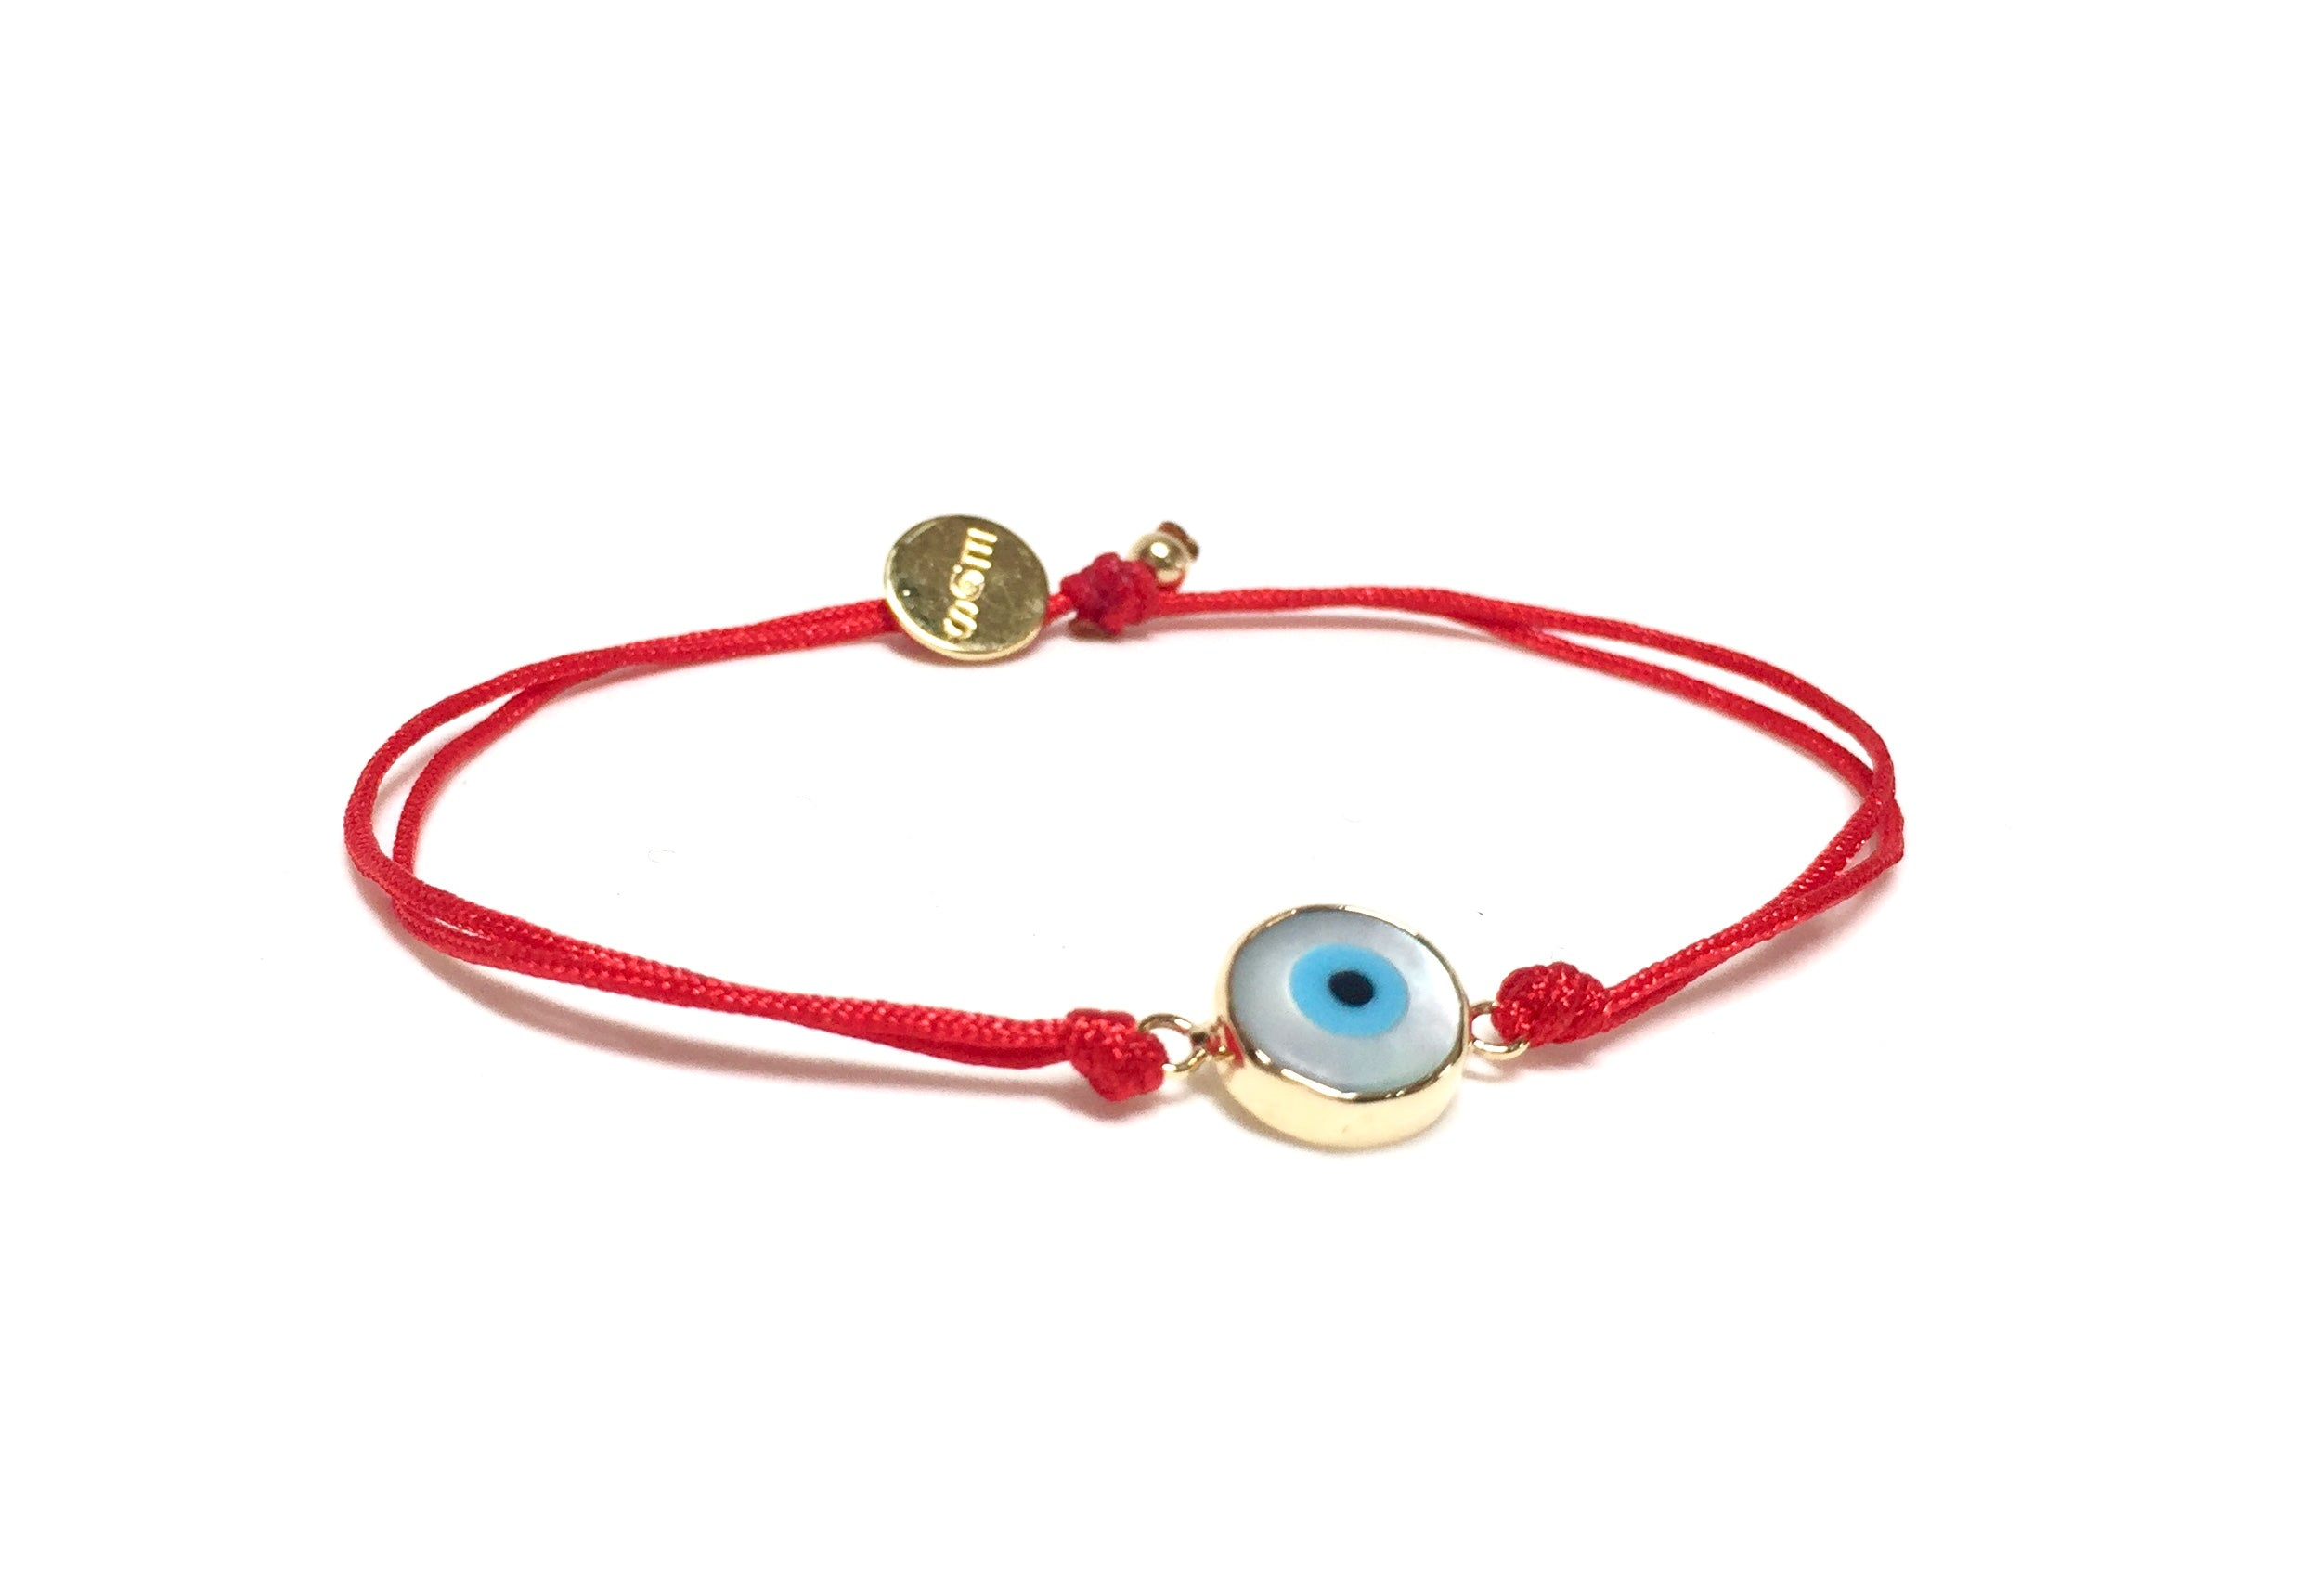 kalo martaki mina products eye mati jewels bracelet